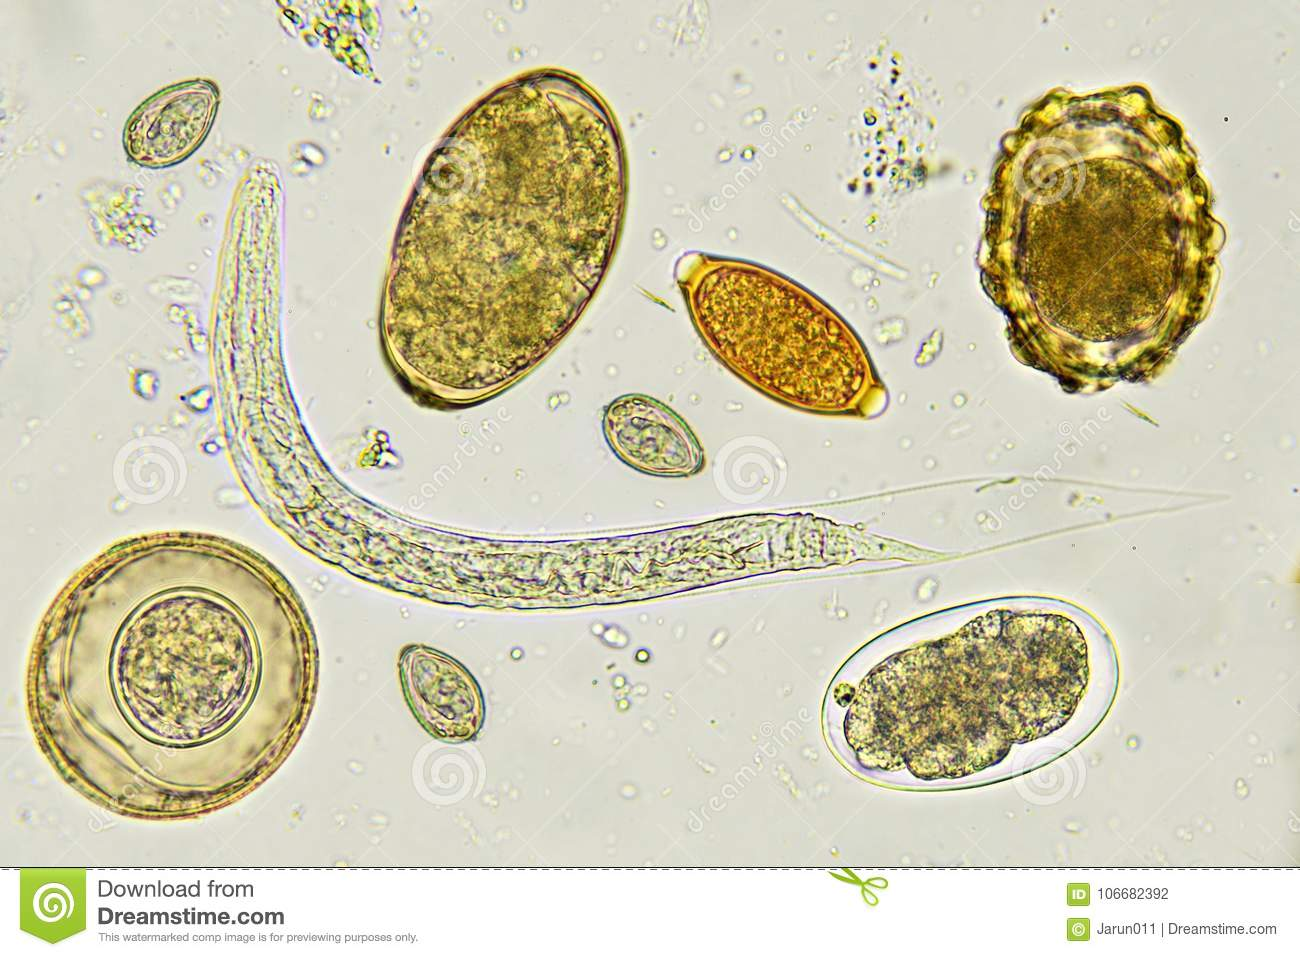 15 Best Parazitologie images   Medical laboratory, Medical laboratory science, Microbiology